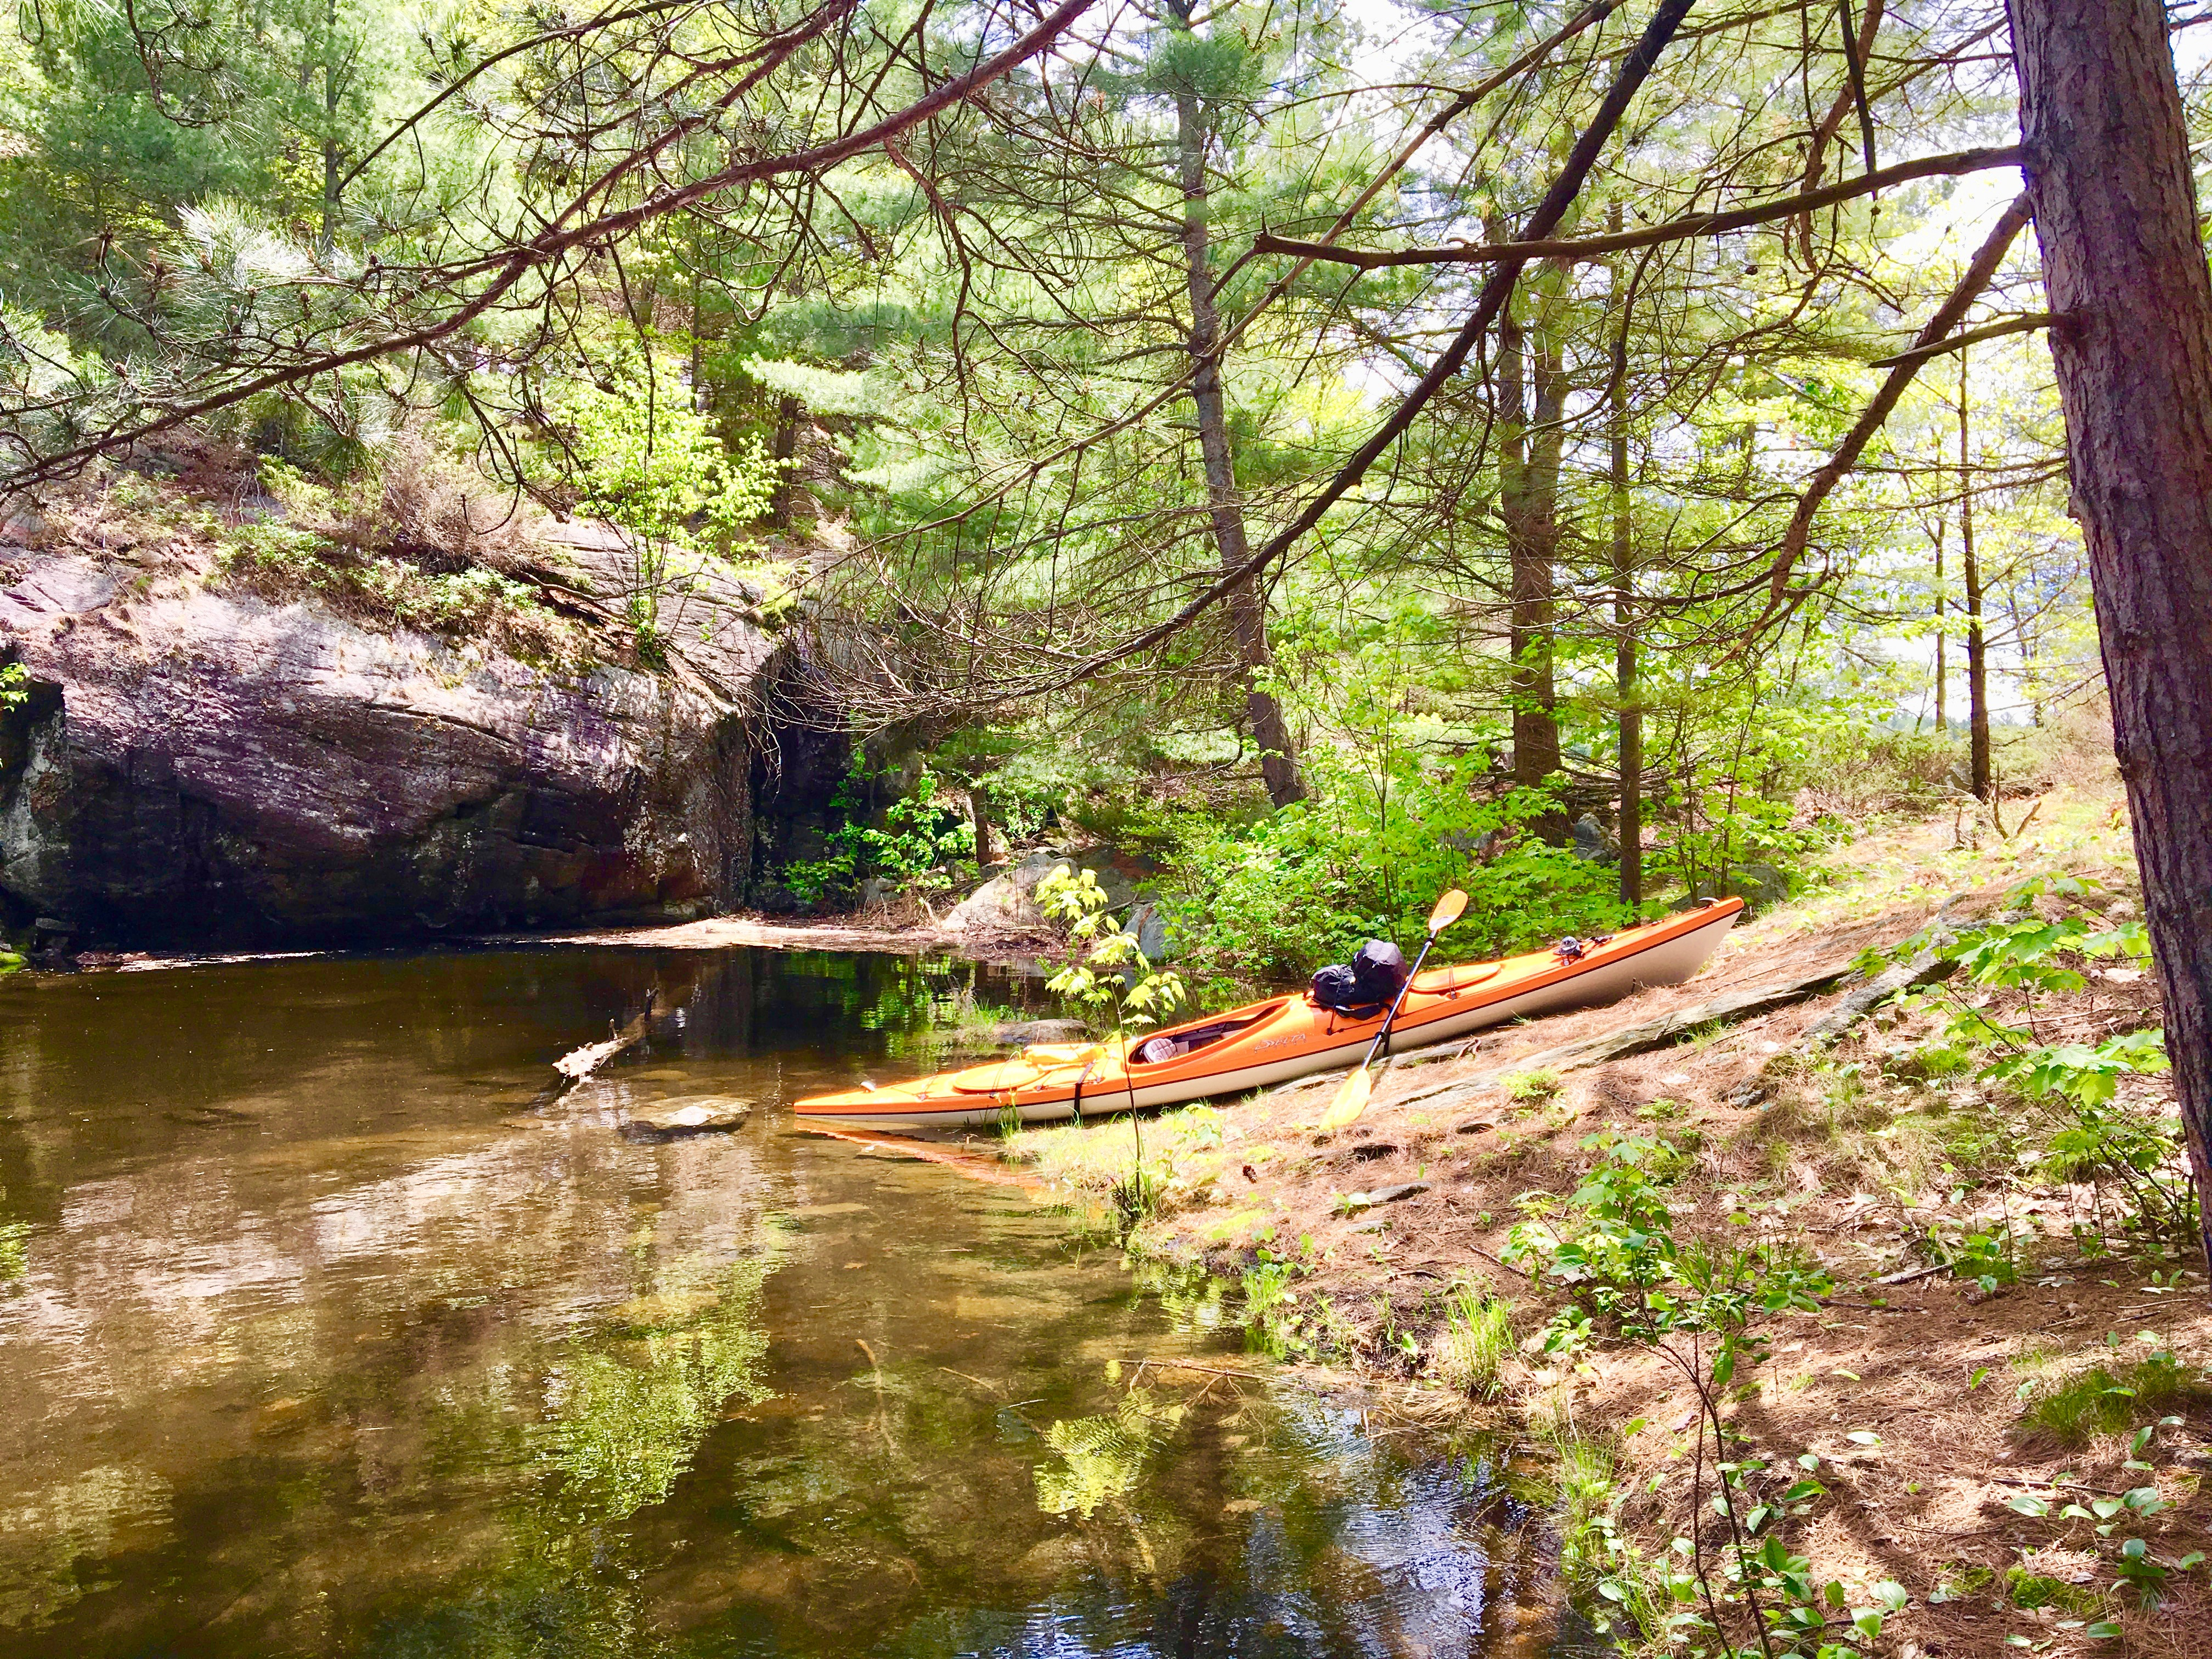 Go Home Lake – Time to say goodbye to another paddling